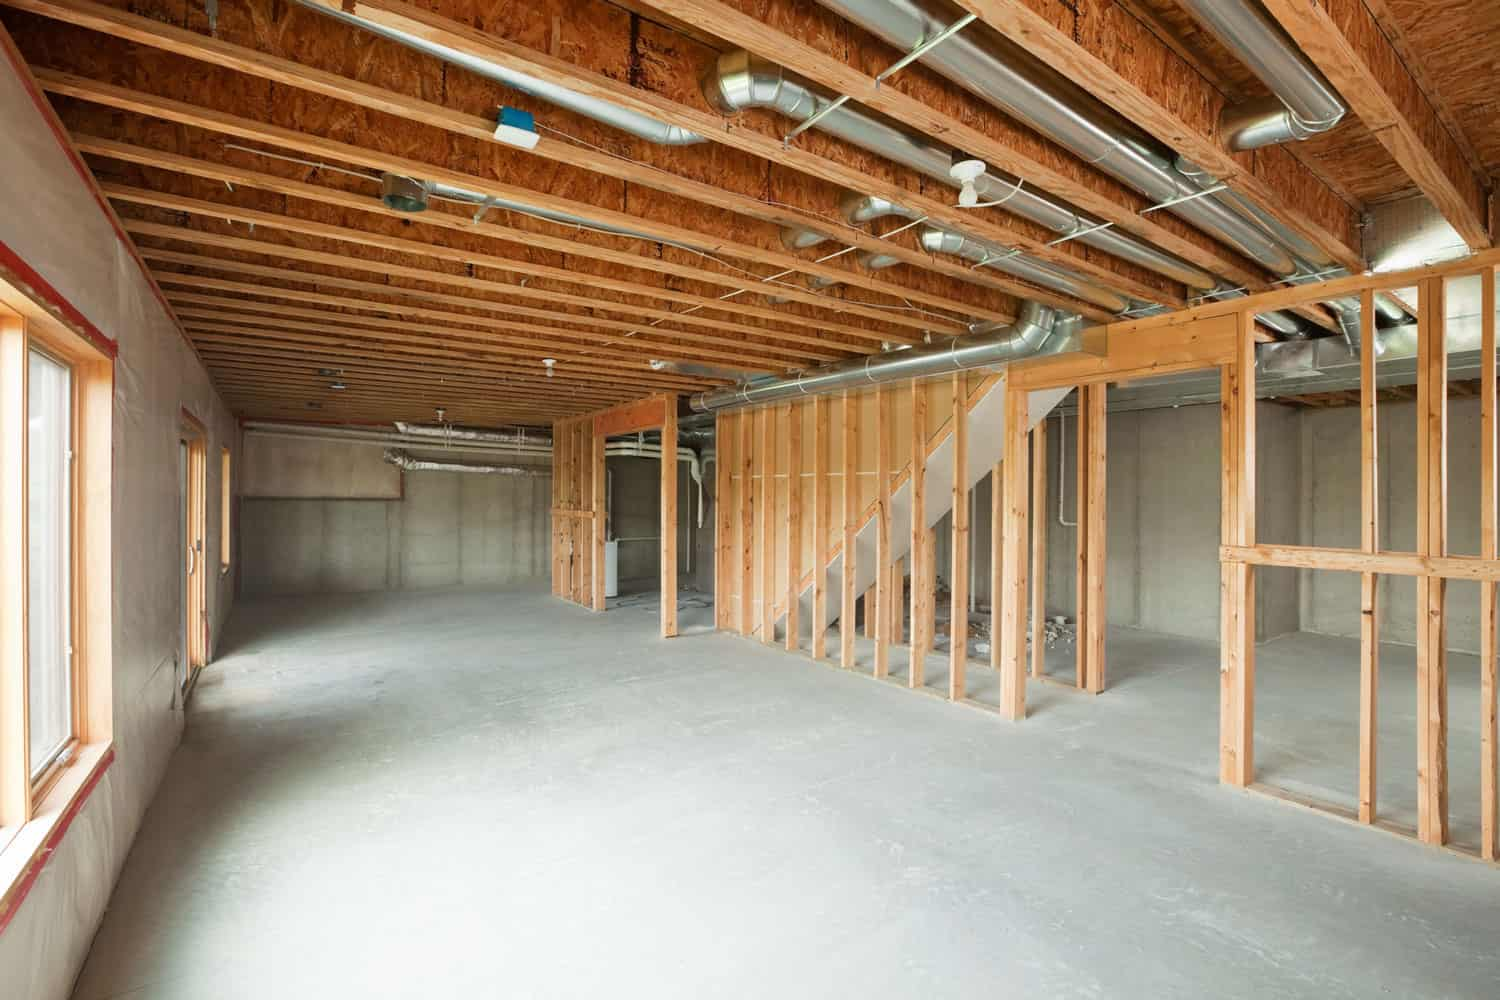 An unfinished walk-out basement in a large two-story or ranch house